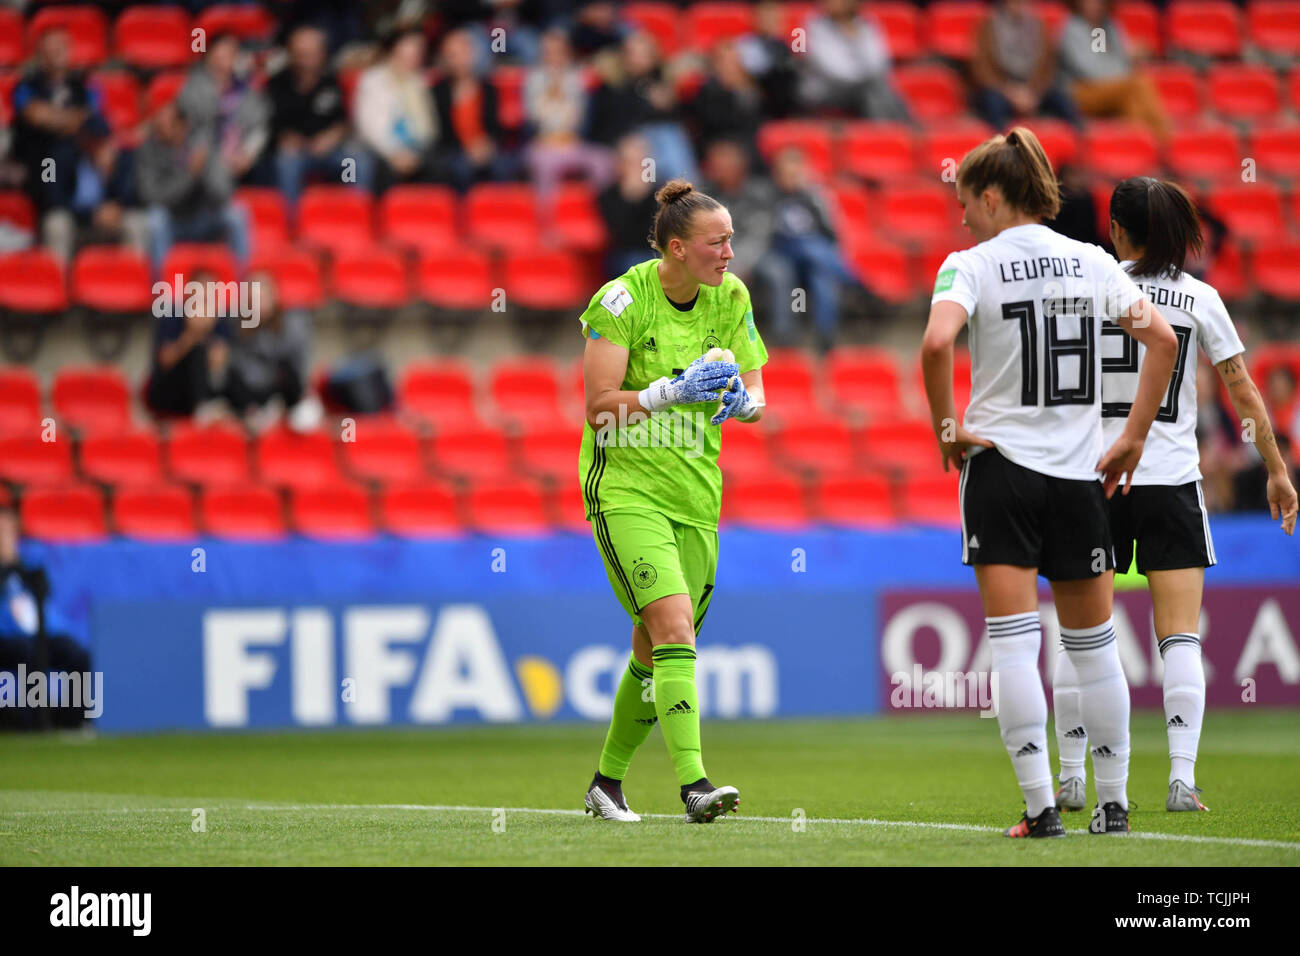 8 june 2019 Rennes, France Soccer Women World Championships Germany v China  Almuth Schult (Torwart, DFB-Frauen) (1) motivates her teammates - Stock Image